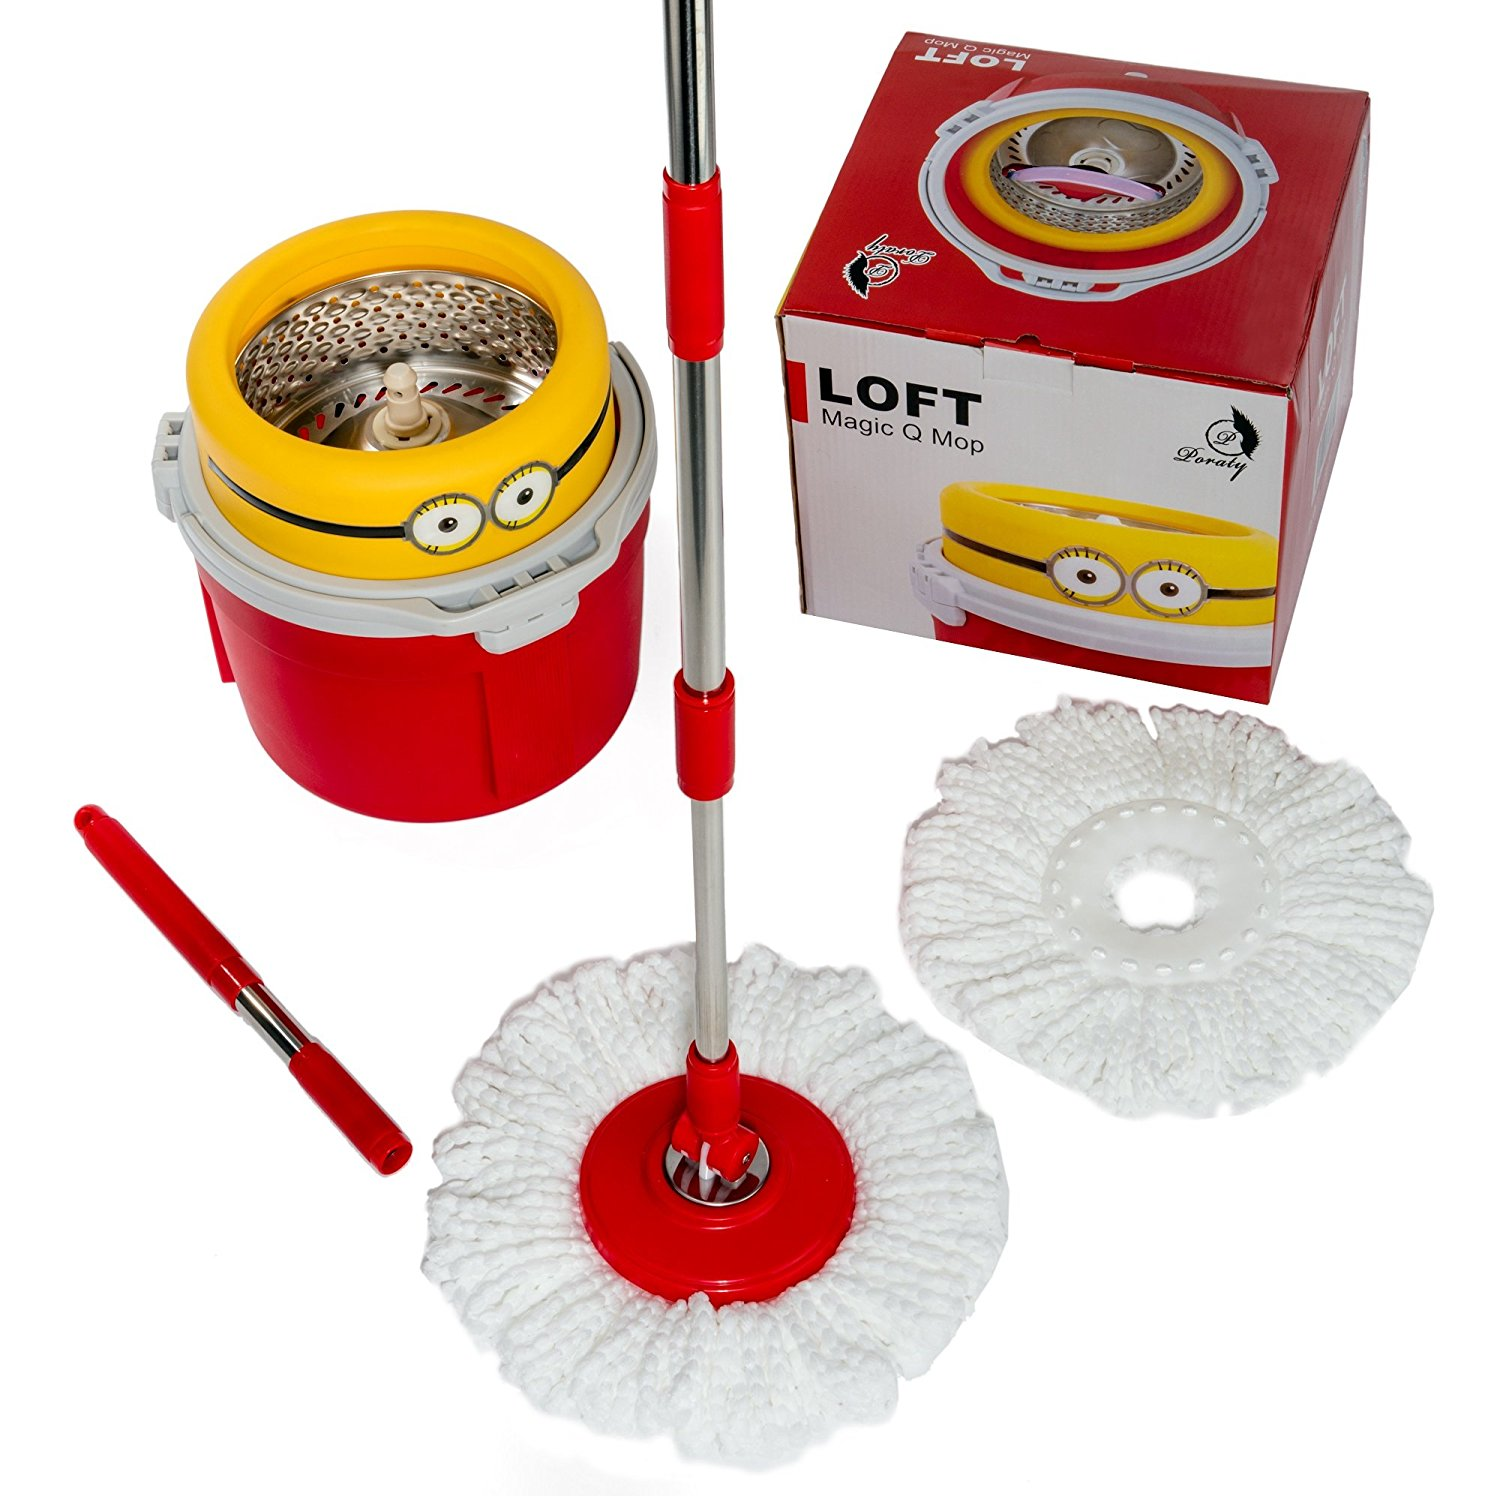 poraty new compact edition stainless steel deluxe rotating 360 spin mop with 2 microfiber mop heads walmartcom